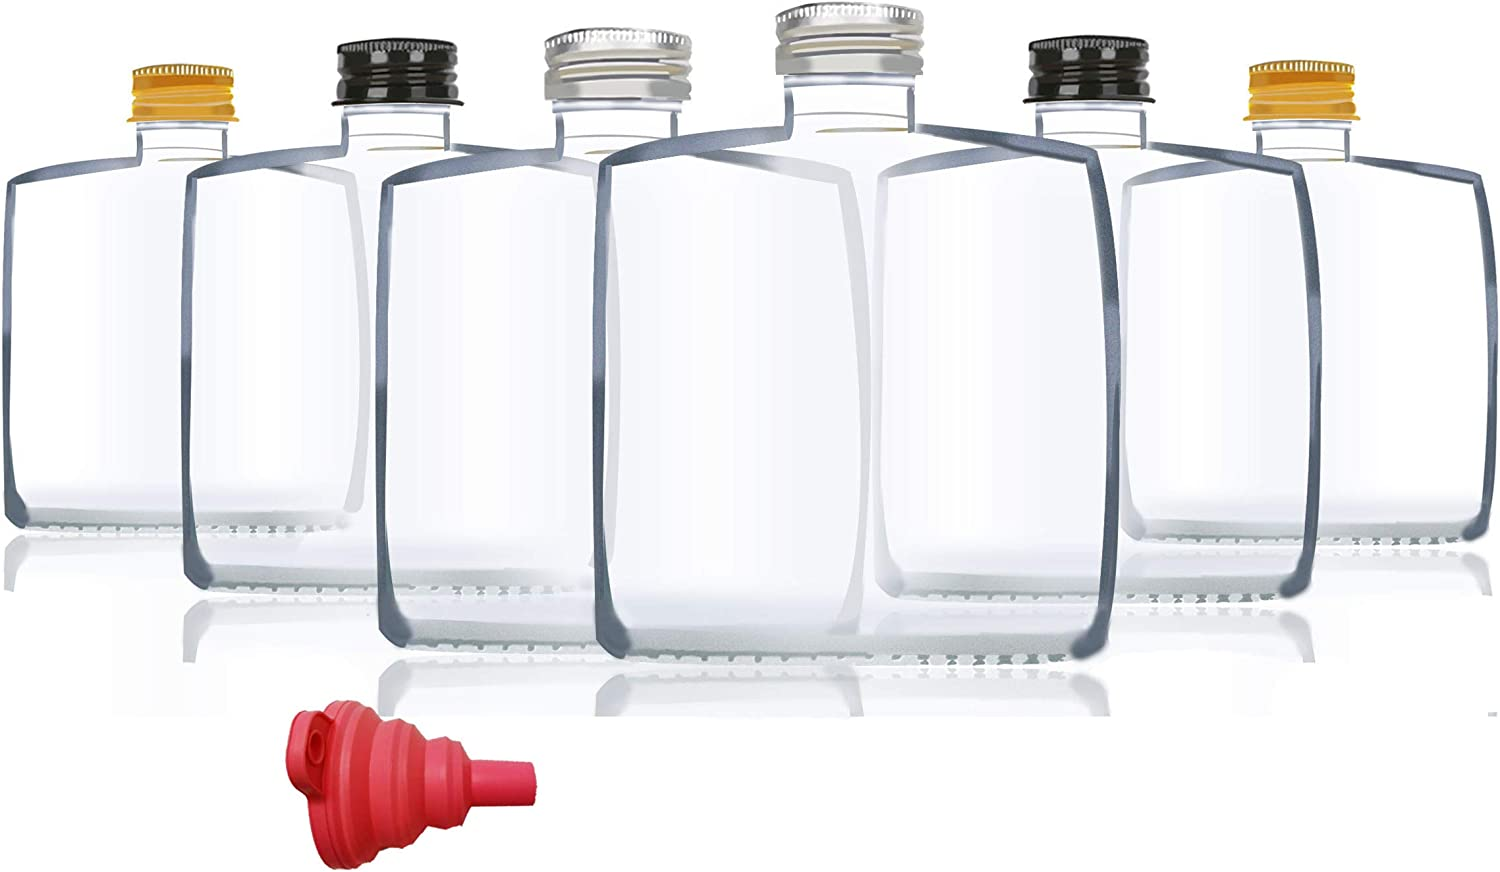 6 Packs Small Juice Mini Glass Liquor Wine Bottles for Milk Beverage Perfume Oil Hot Sauce Whiskey Soda Liquid Storage Honey Drink Containers bottle with Leak Proof Cap (250ml(8.7OZ), Clear glass)